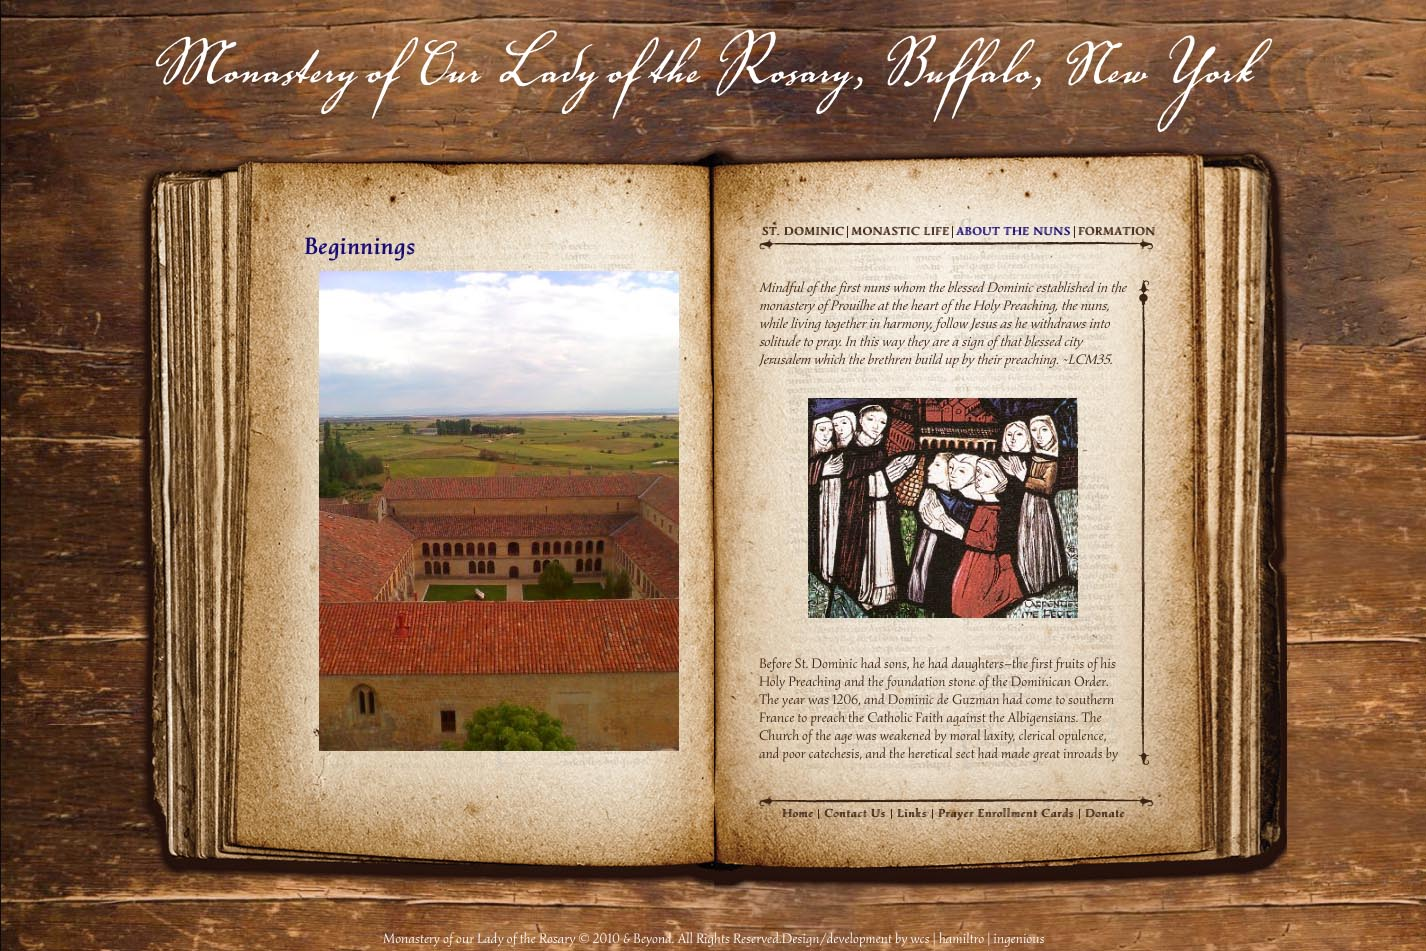 web design for a monastery - beginnings page